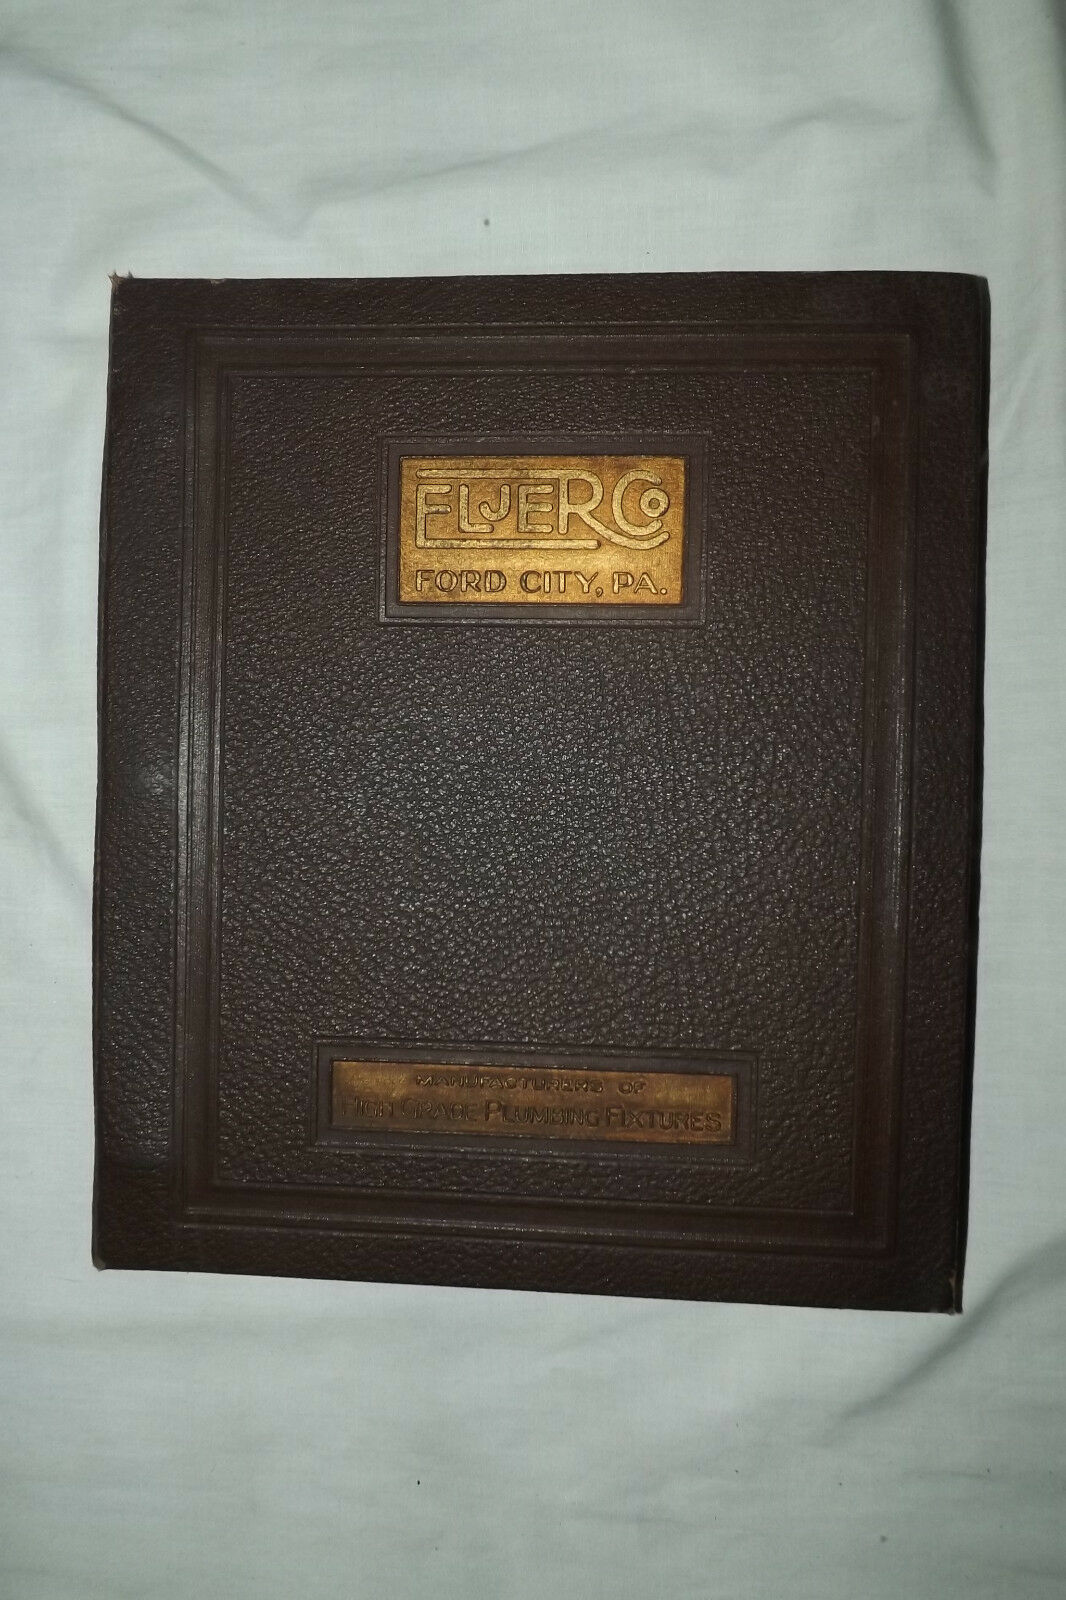 1935 ELJER PLUMBING FIXTURES CATALOG ~ BROCHURE ~ Price Sheet   Ford City, PA.